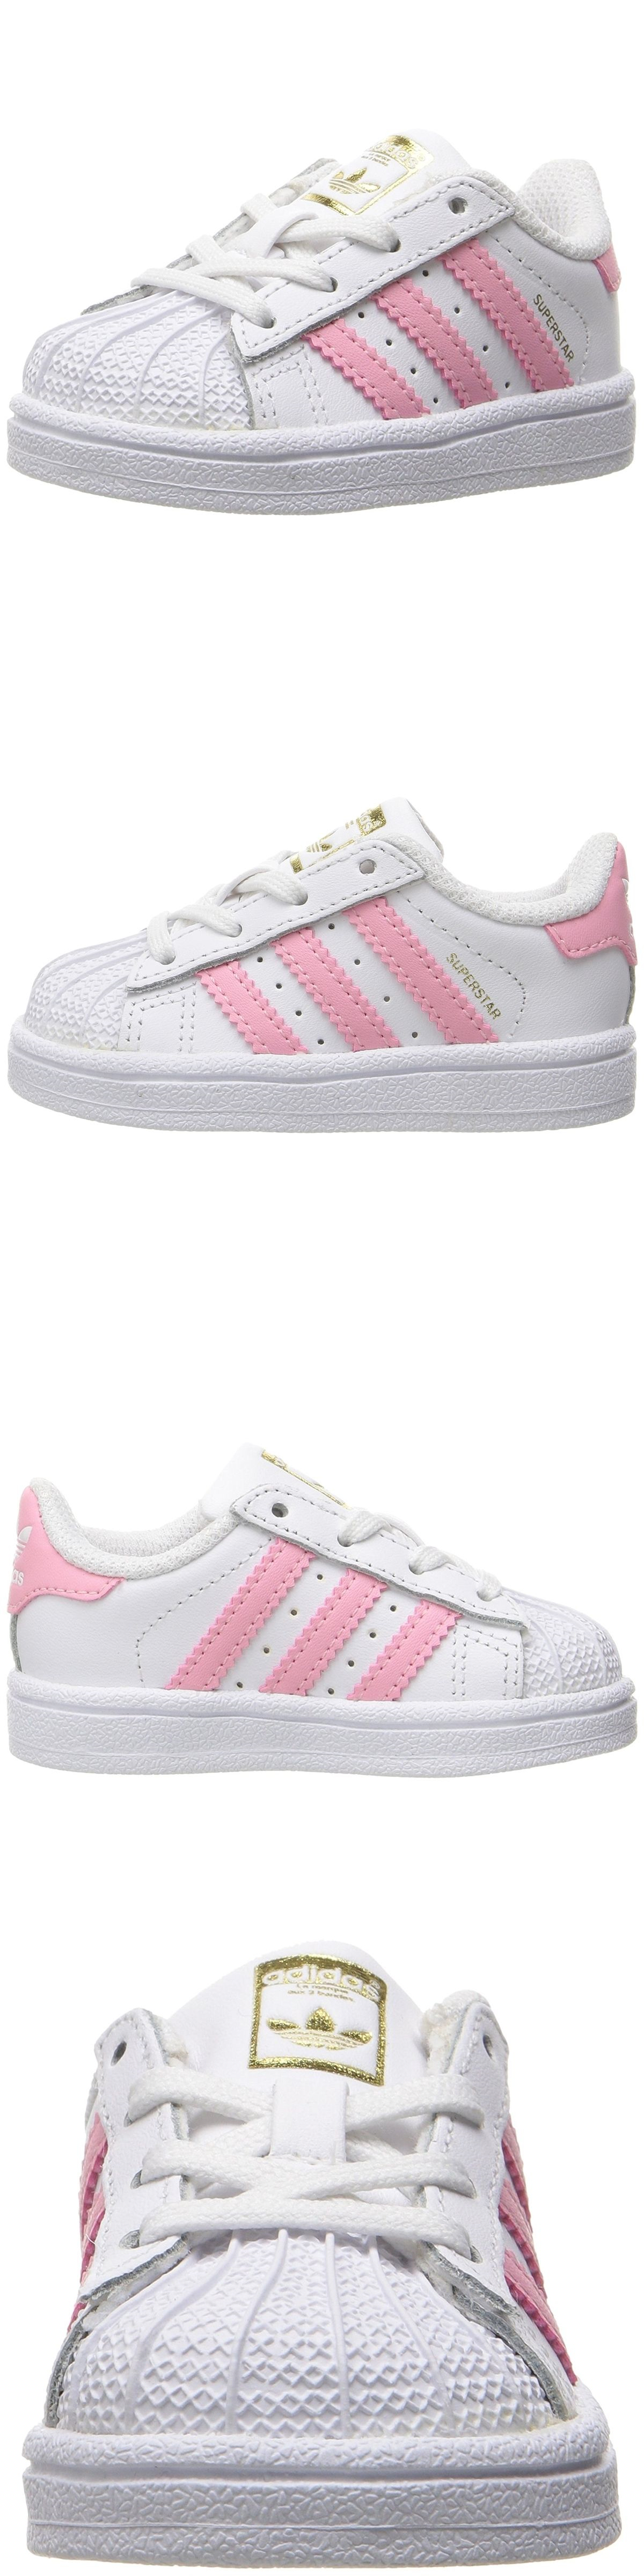 classic fit ac2d6 3e69f Infant Shoes  Adidas Originals Superstar Toddler Girl White Sneakers Adidas  Superstar By3720 BUY IT NOW